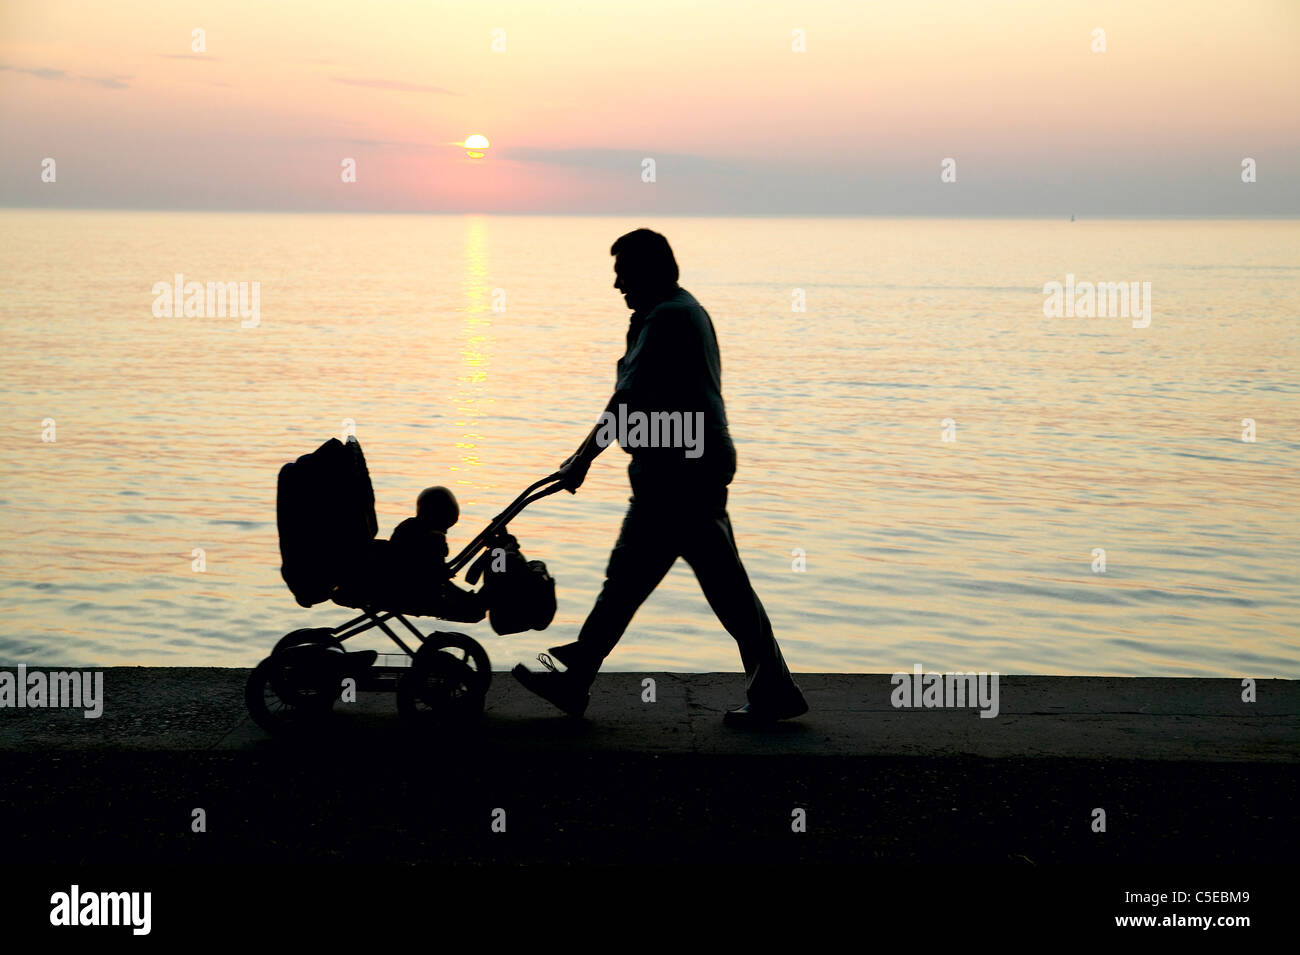 Side view of a silhouette man with pram walking by the peaceful sea at sunset - Stock Image